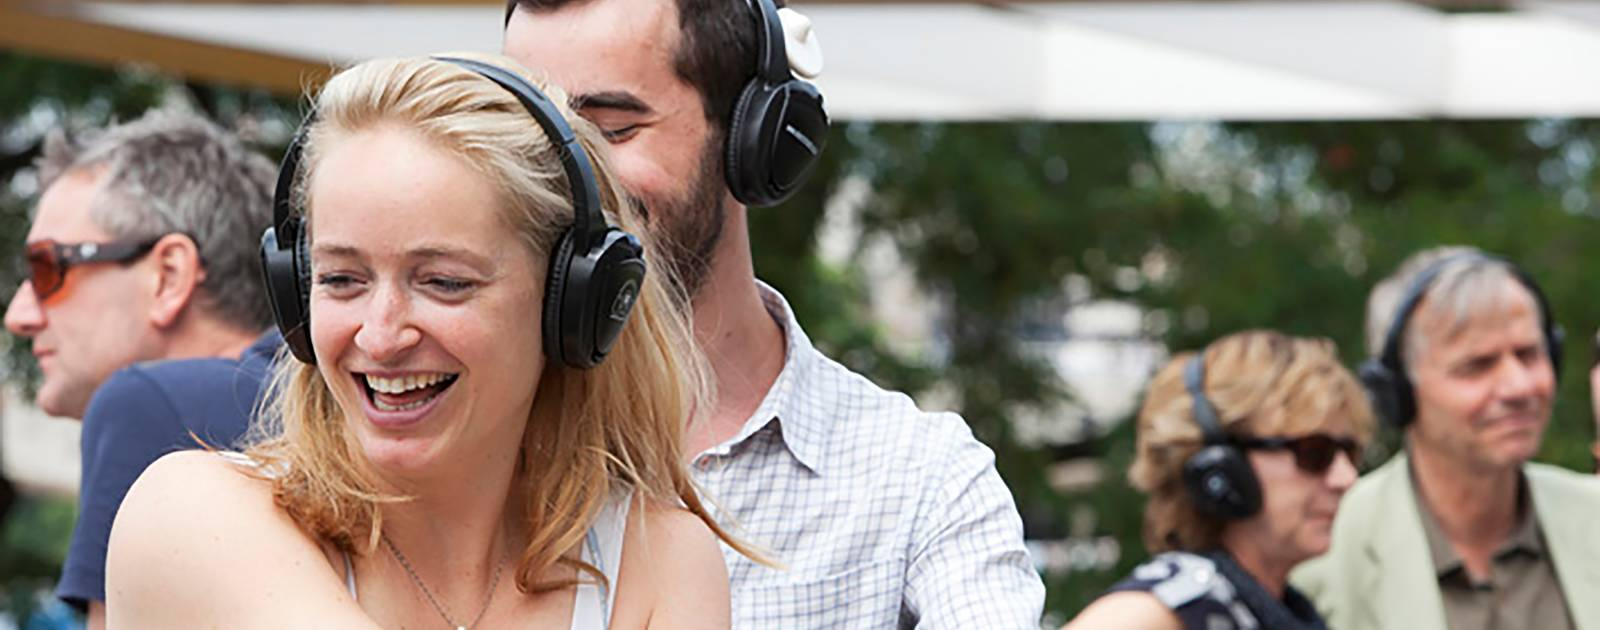 A happy couple participate in an event wearing headphones at the Southbank Centre